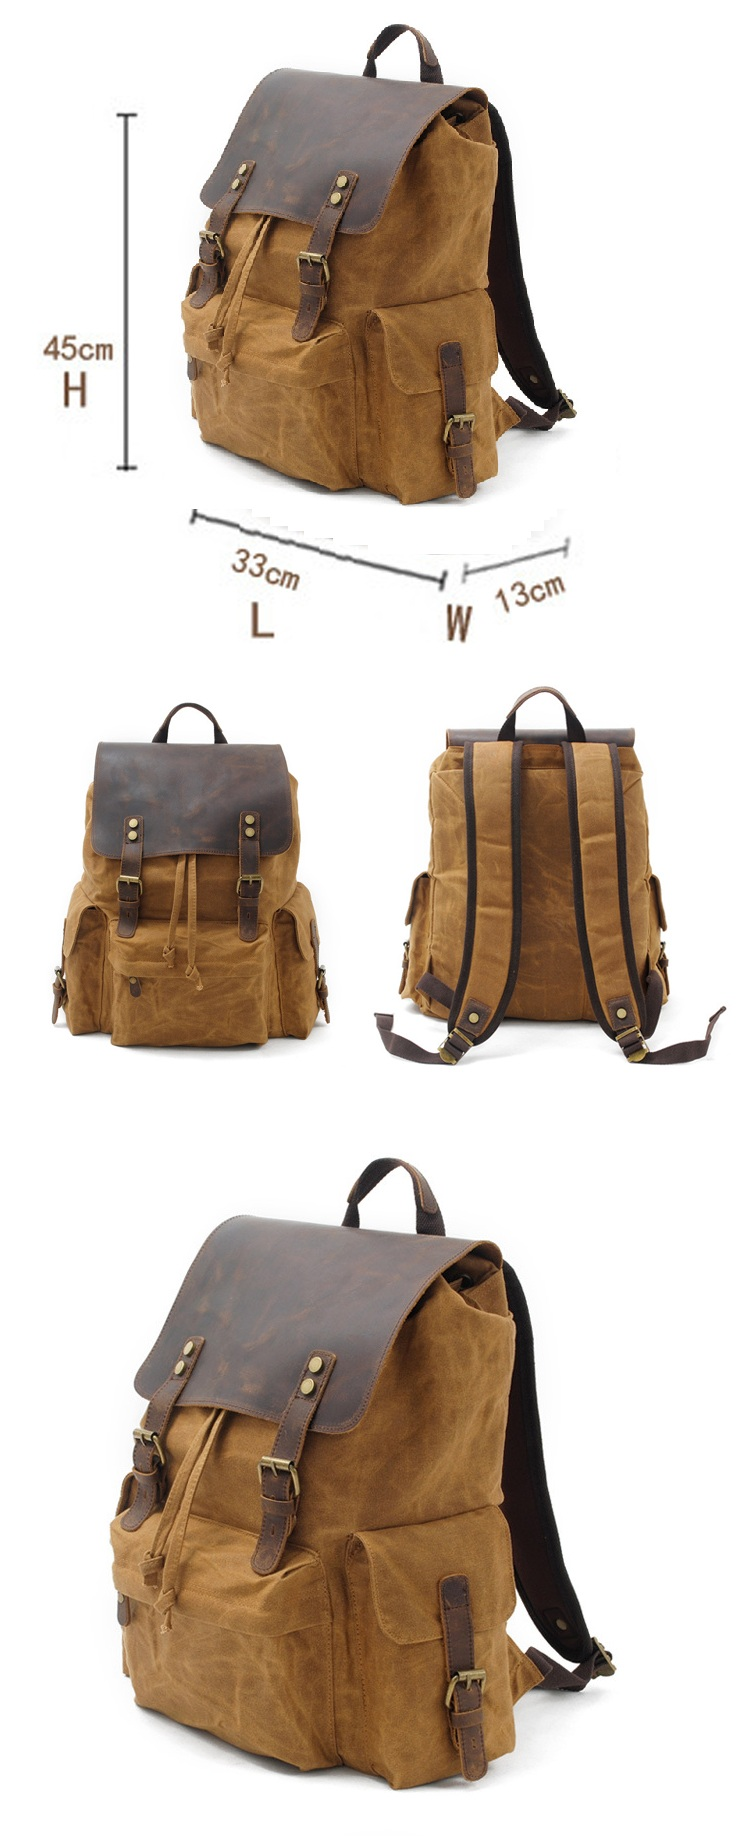 Wholesale vintage retro leather outdoor fancy waxed canvas laptop backpack satchel school back pack bags